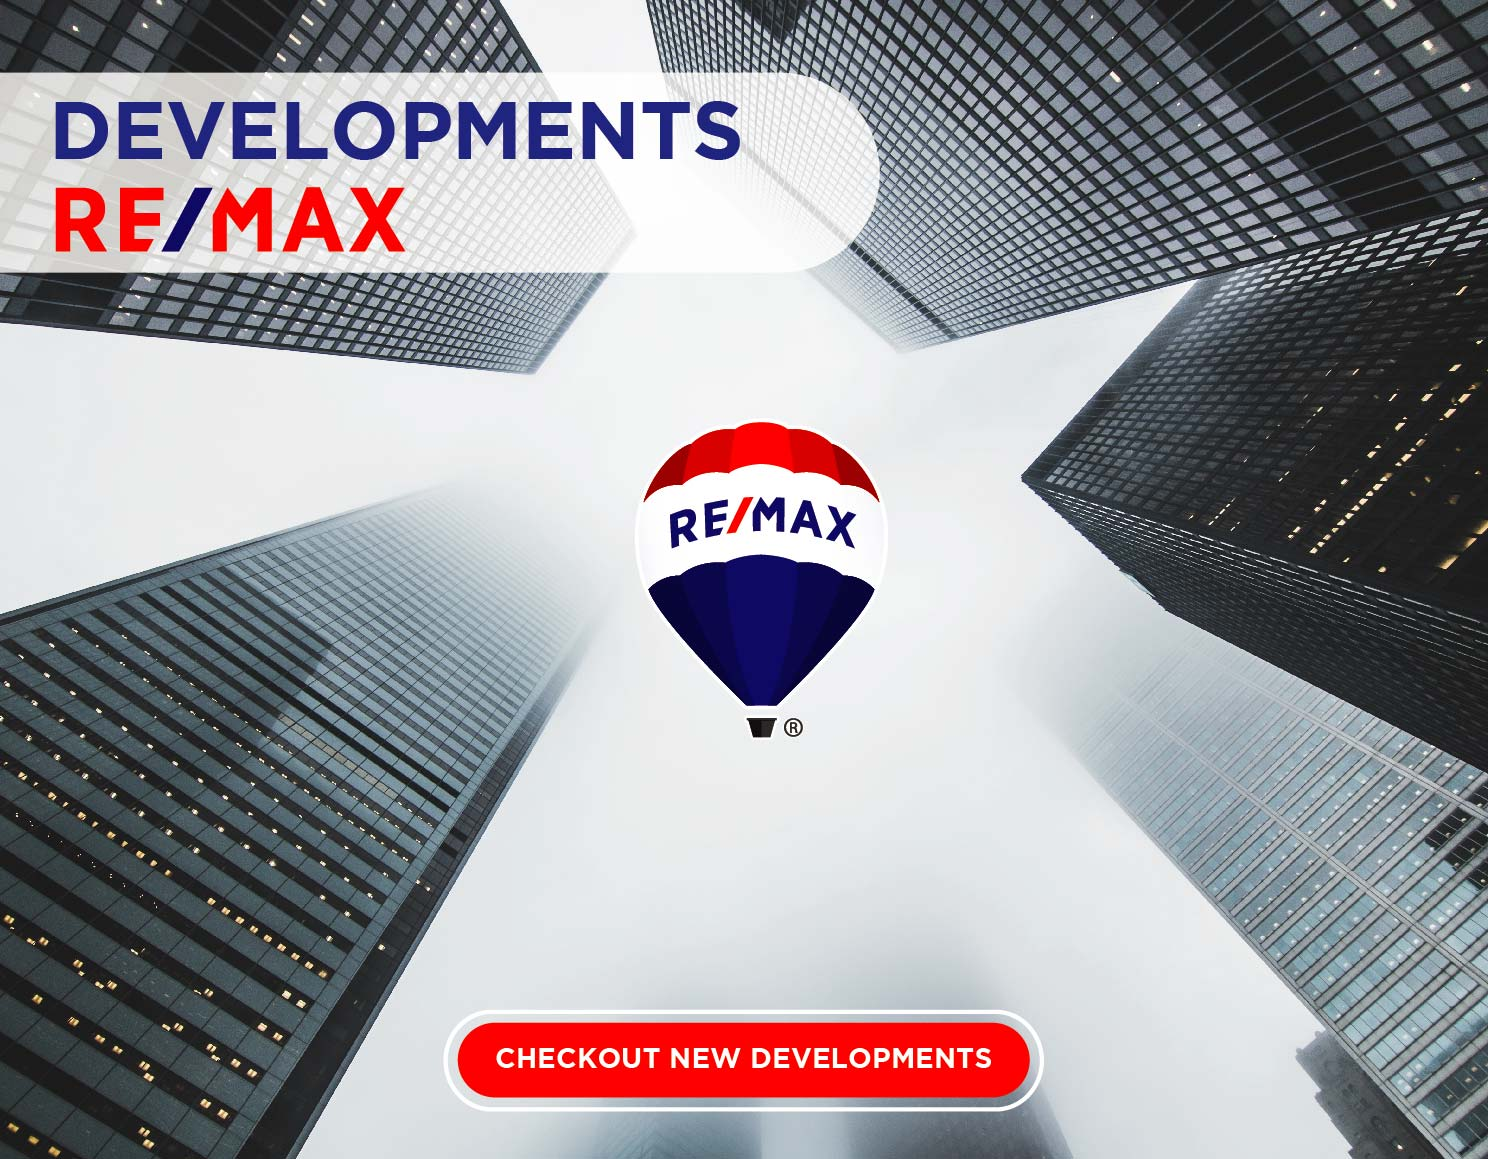 New property developments - residential and commercial properties